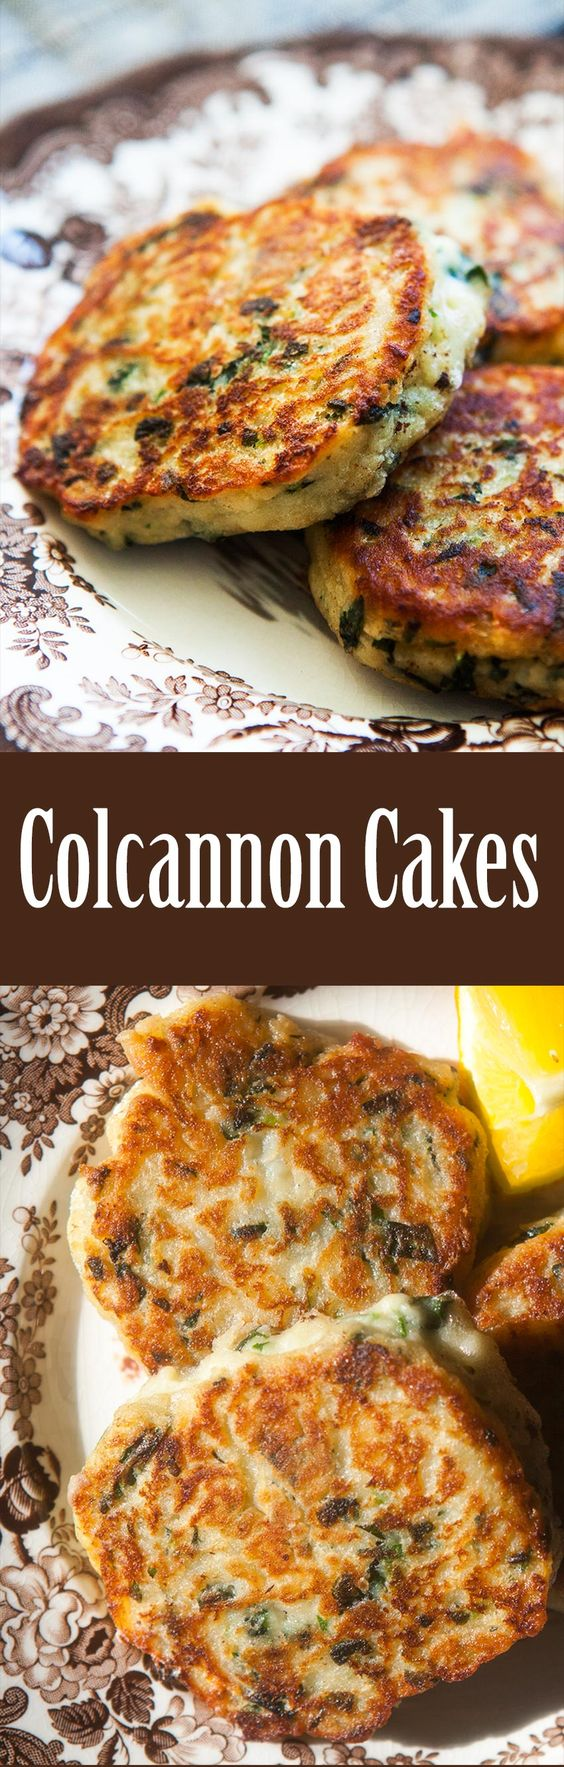 Colcannon cakes! These are fried potato patties made with colcannon ...